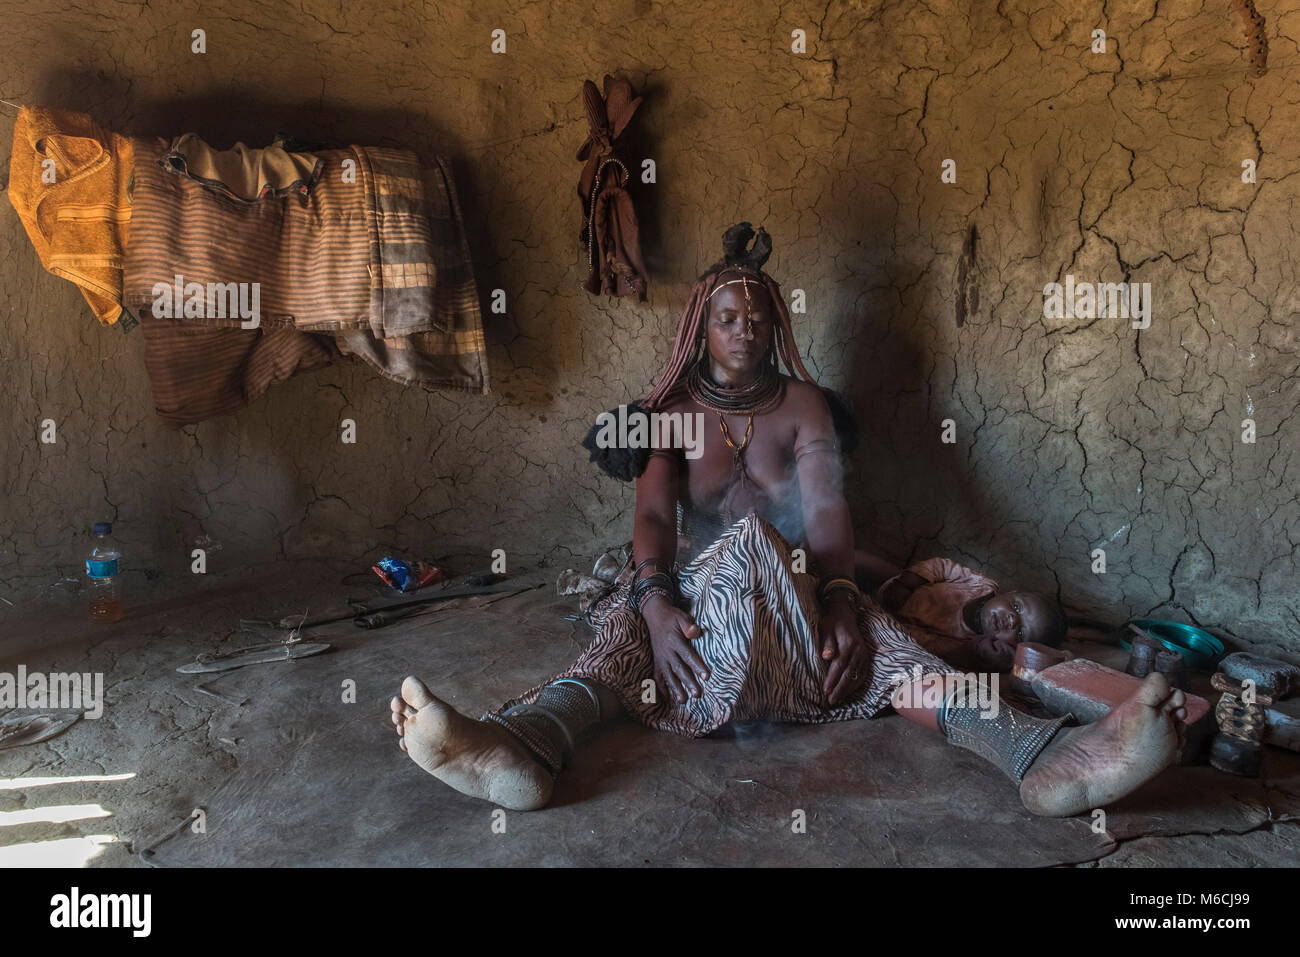 Woman of the Ovahimba or Himba people cleaning and disinfecting clothes and body, Kunene district, Namibia - Stock Image